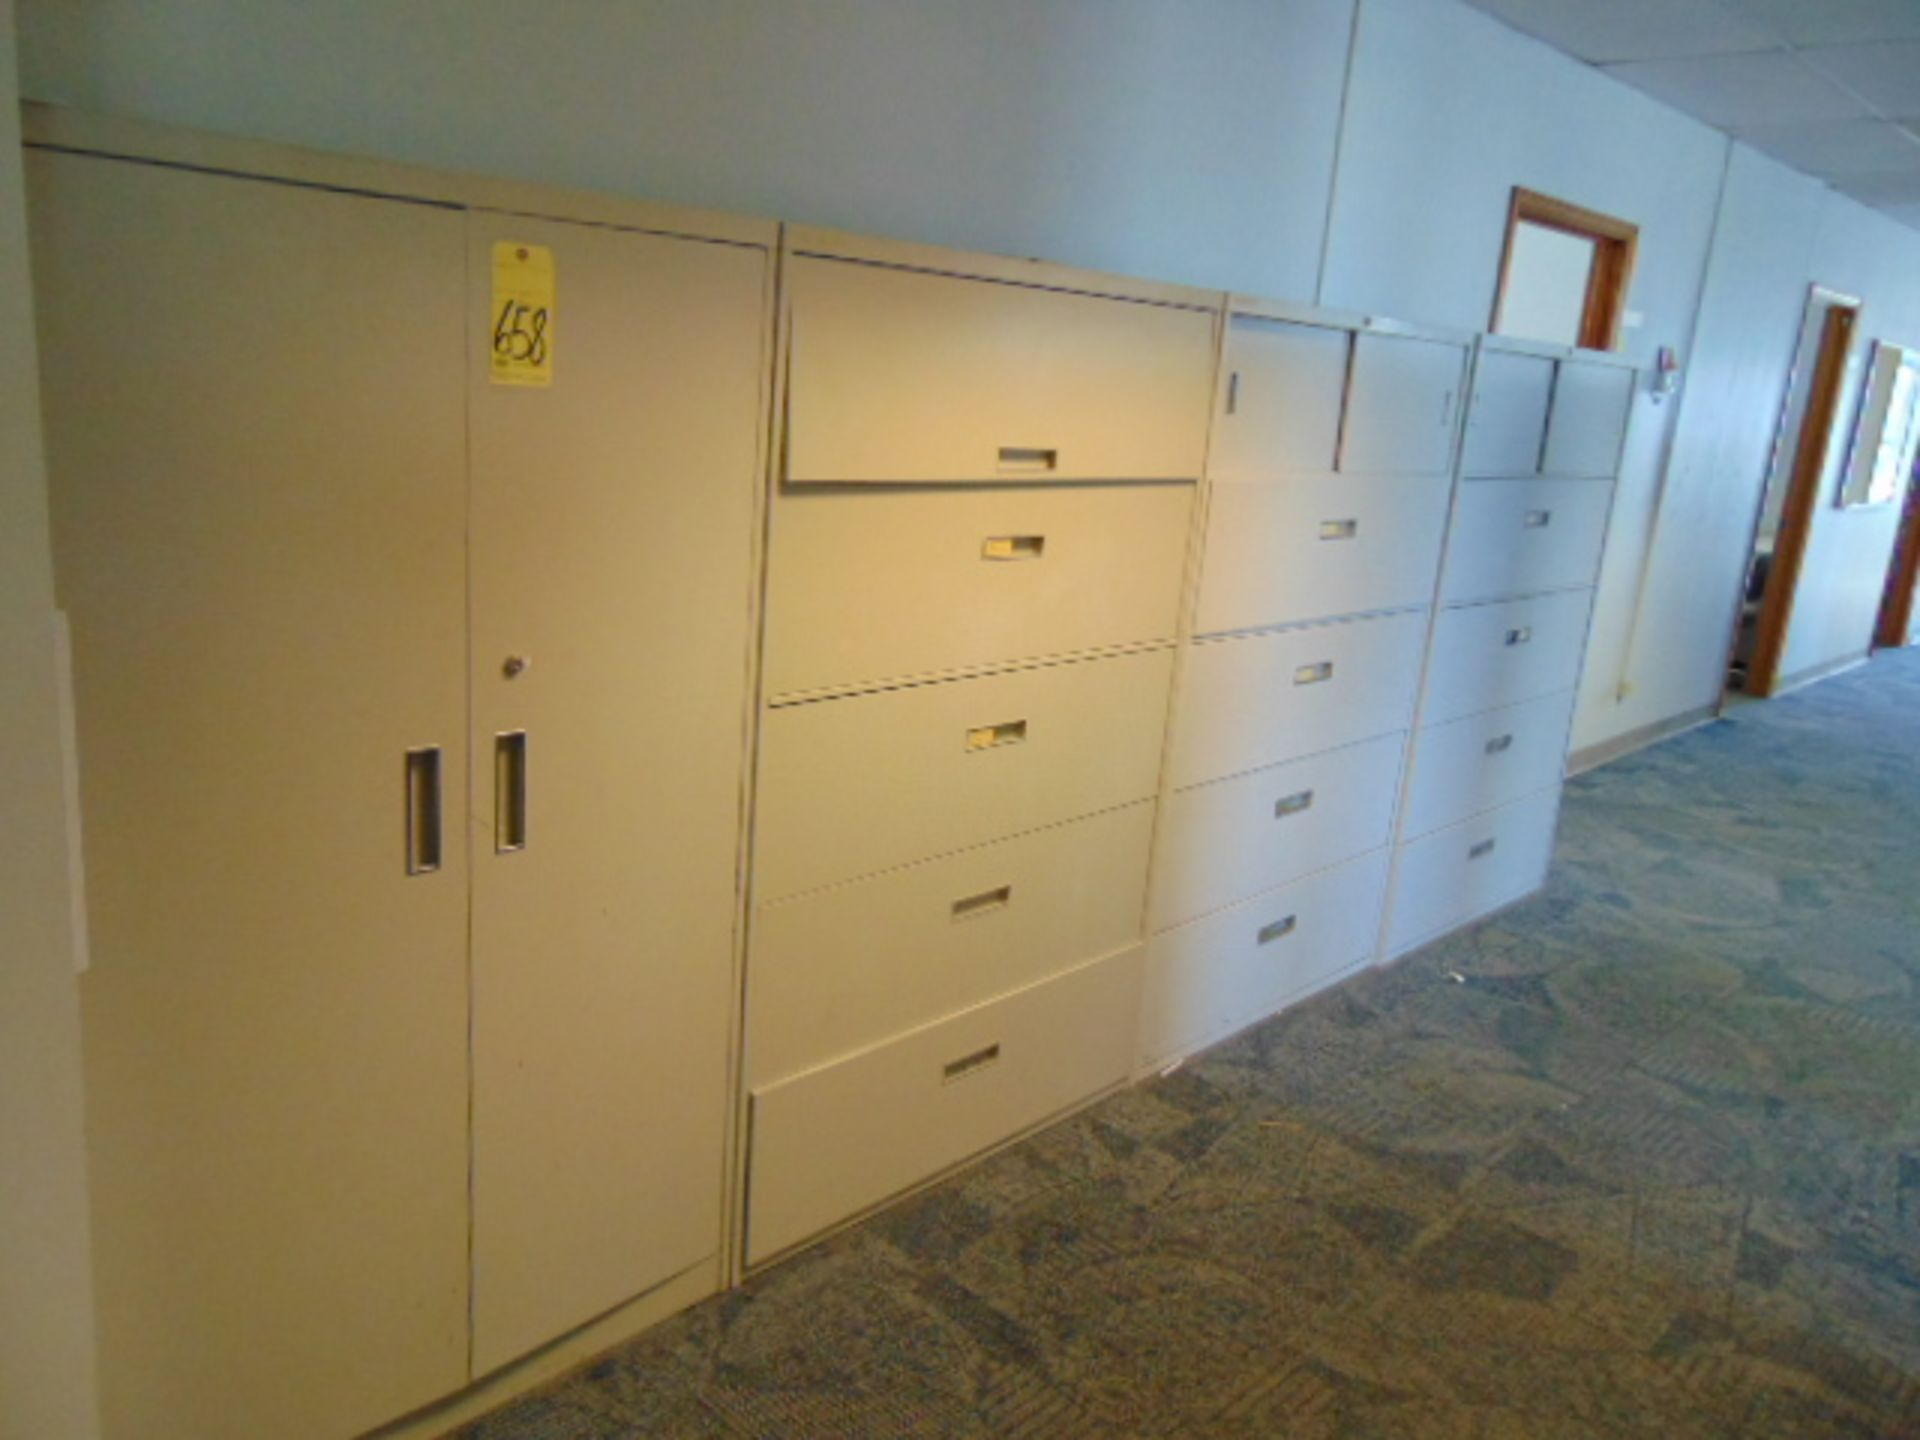 Lot 658 - LOT CONSISTING OF: 2-door supply cabinet & (3) lateral file cabinets (located upstairs)